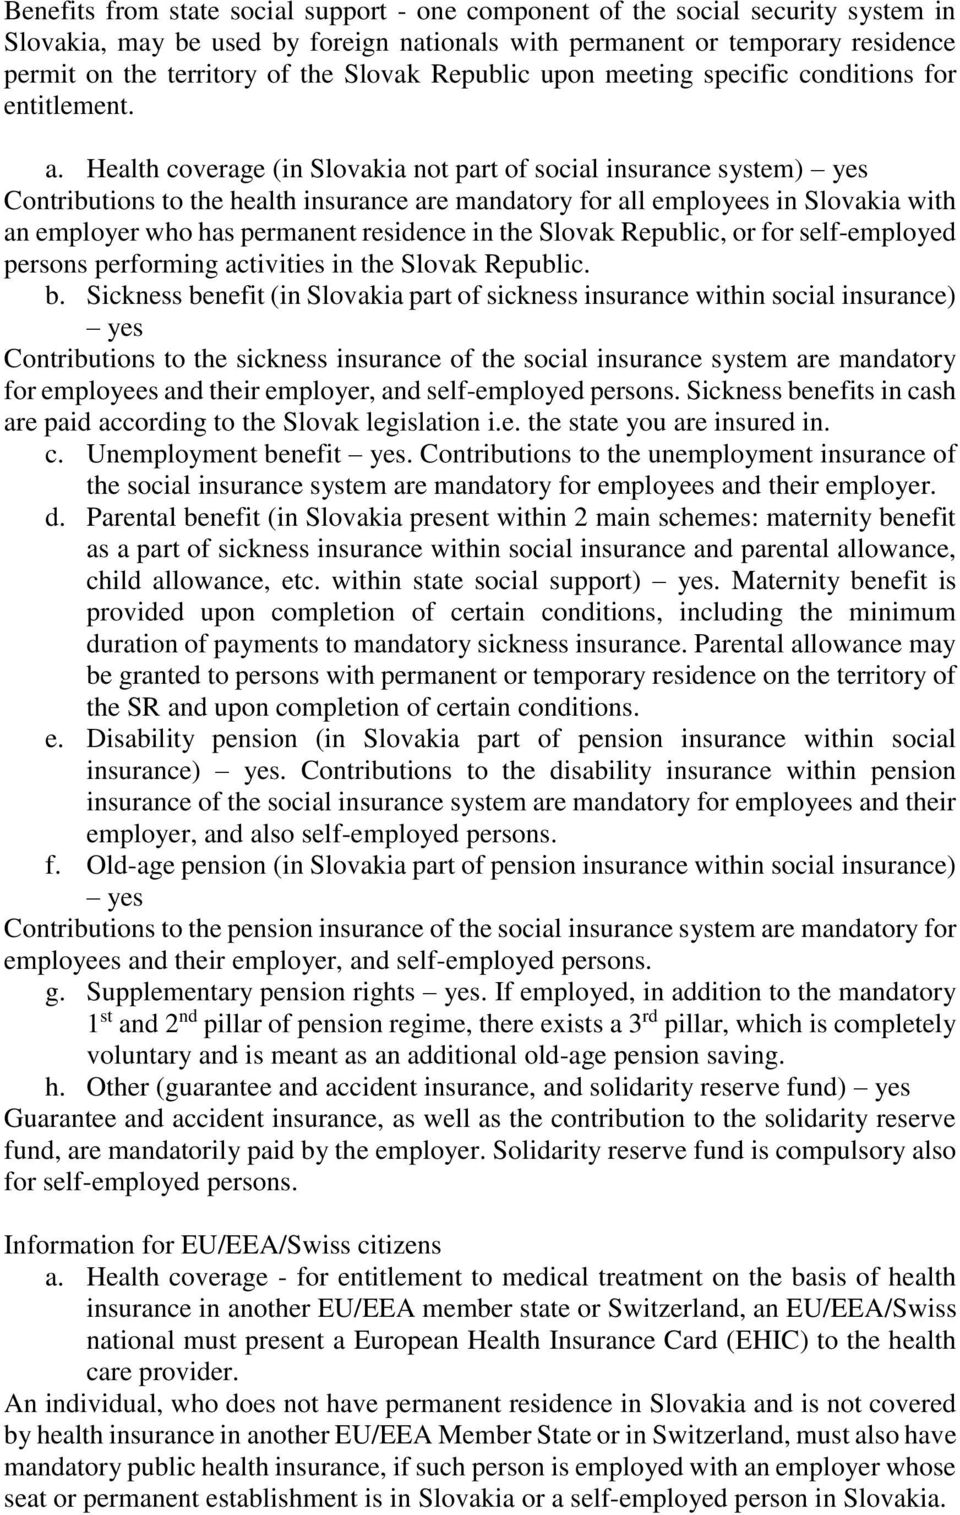 Health coverage (in Slovakia not part of social insurance system) yes Contributions to the health insurance are mandatory for all employees in Slovakia with an employer who has permanent residence in